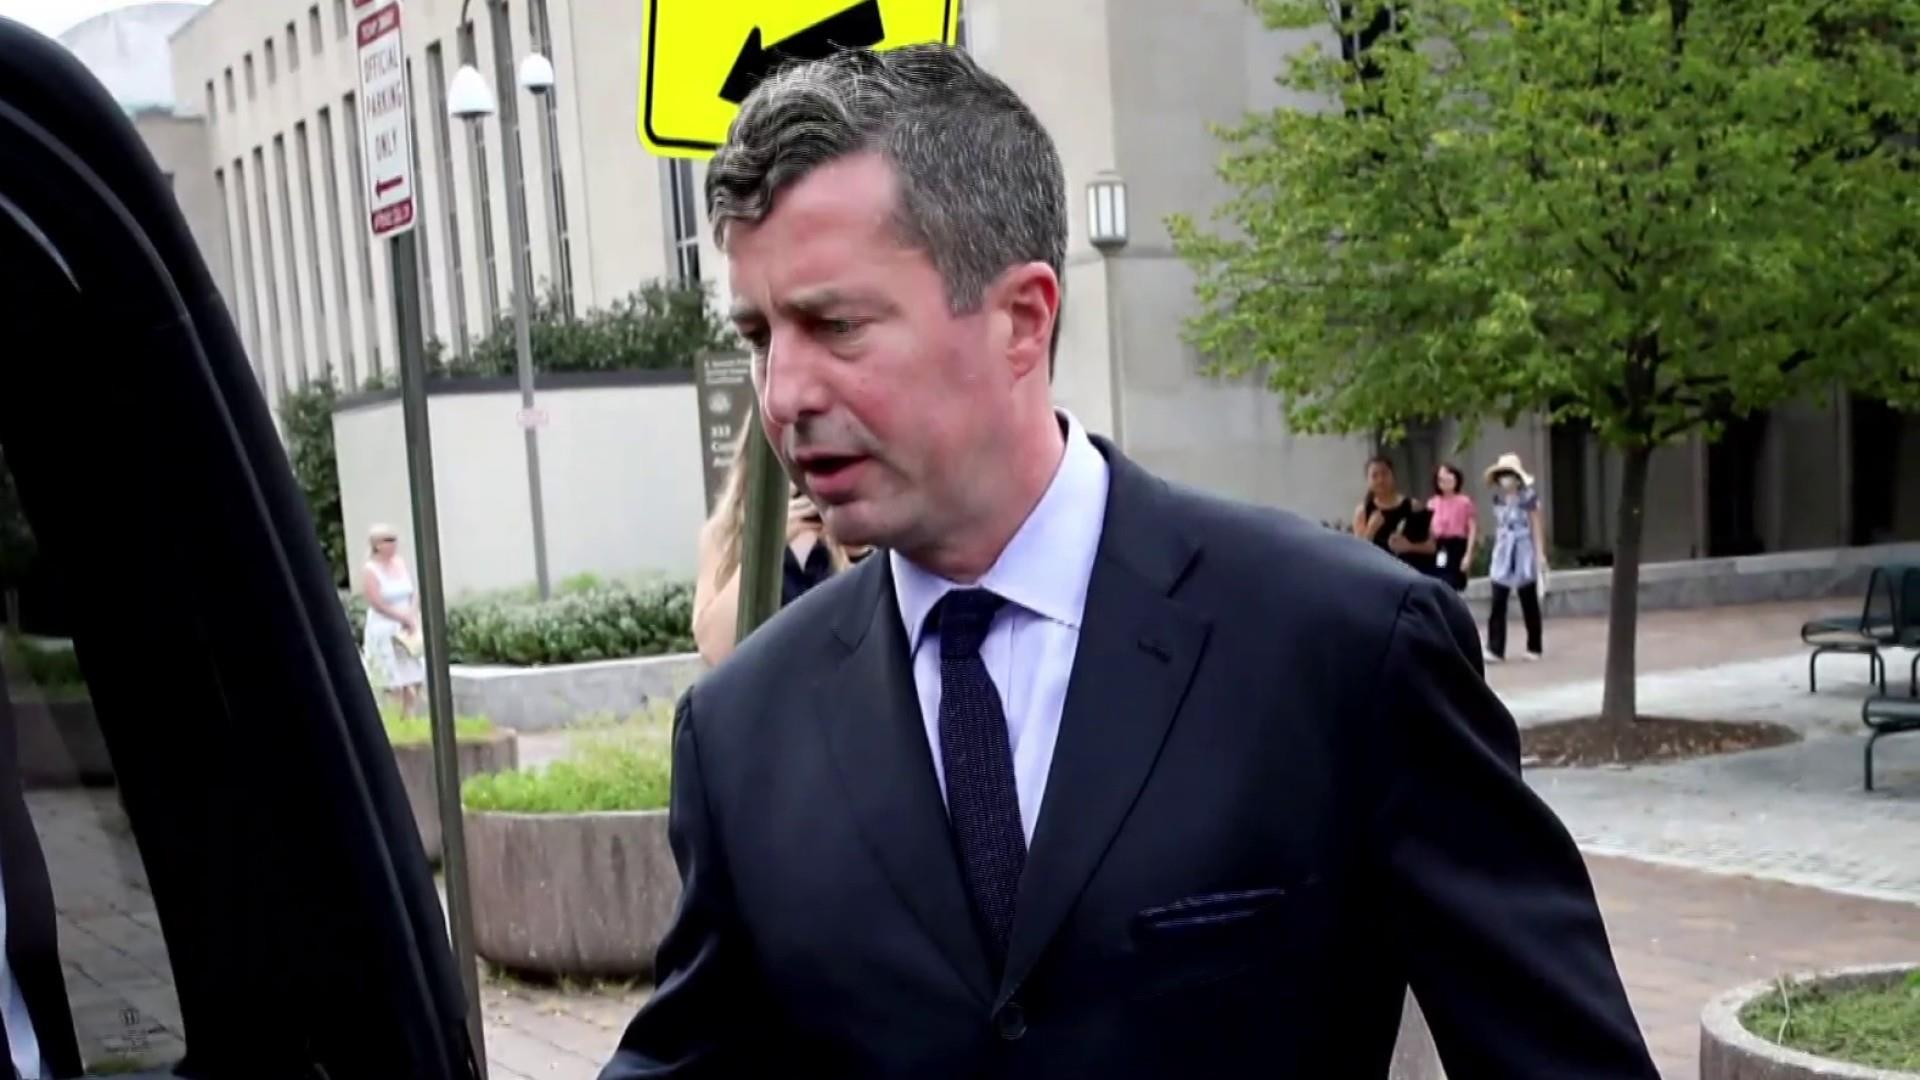 No jail time for Patten, cooperation details remain under seal